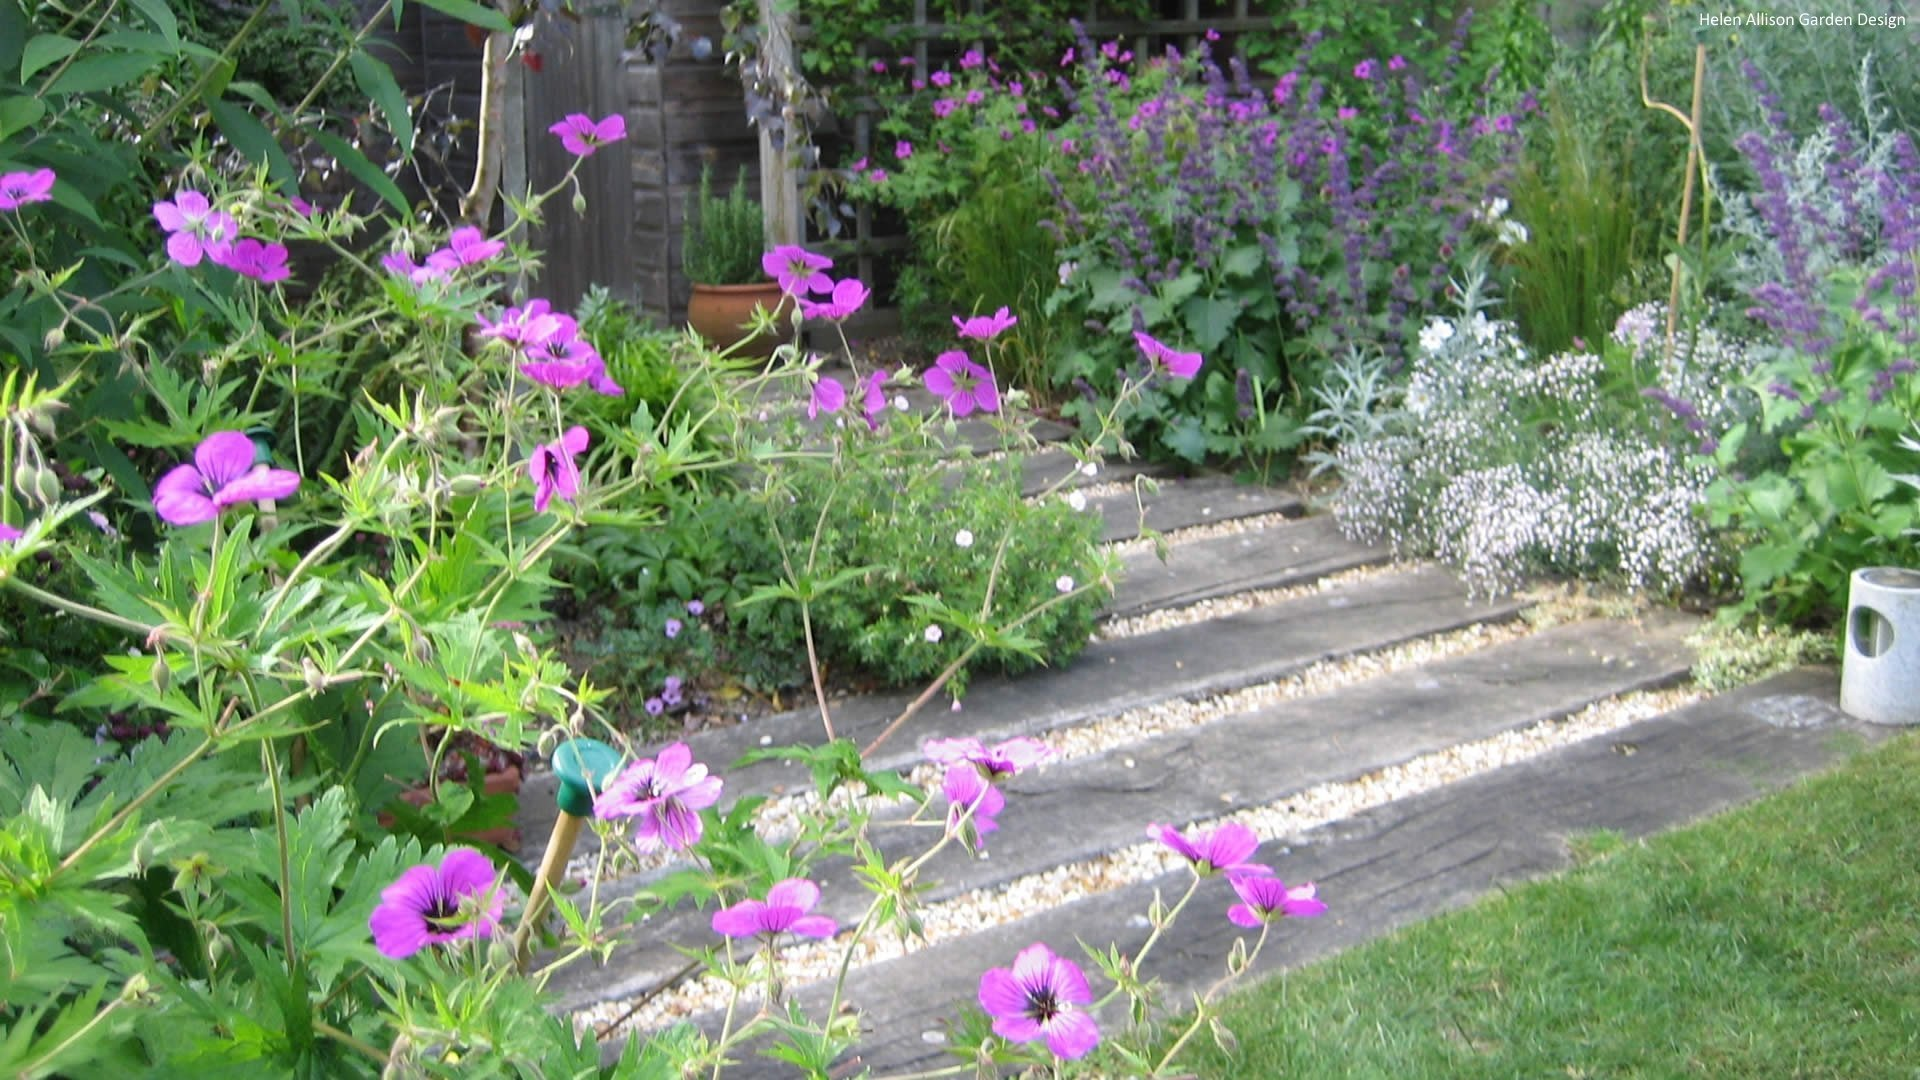 Garden Design by Helen Allison Garden Designer, Suffolk